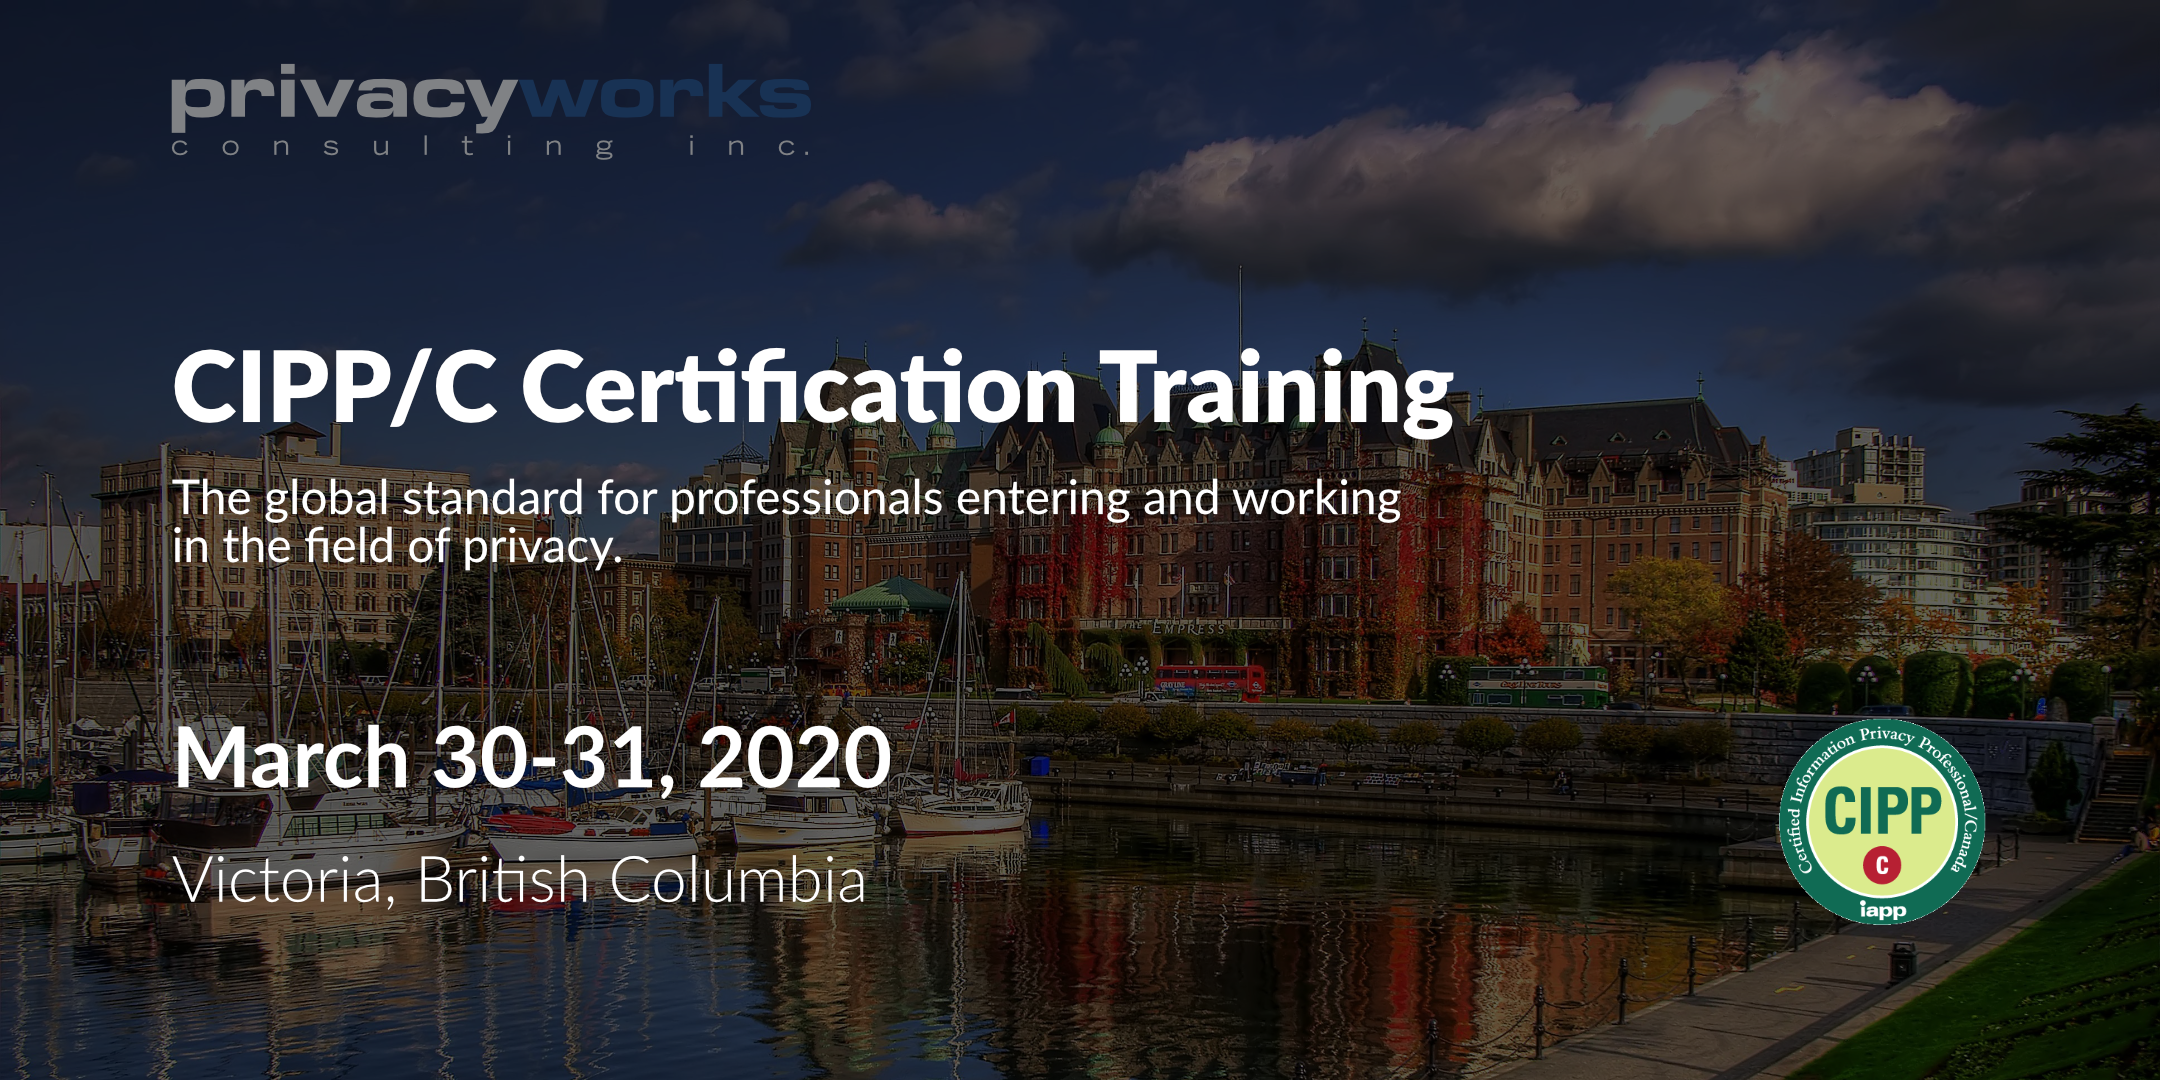 Canadian Privacy Training - CIPP/C Certification